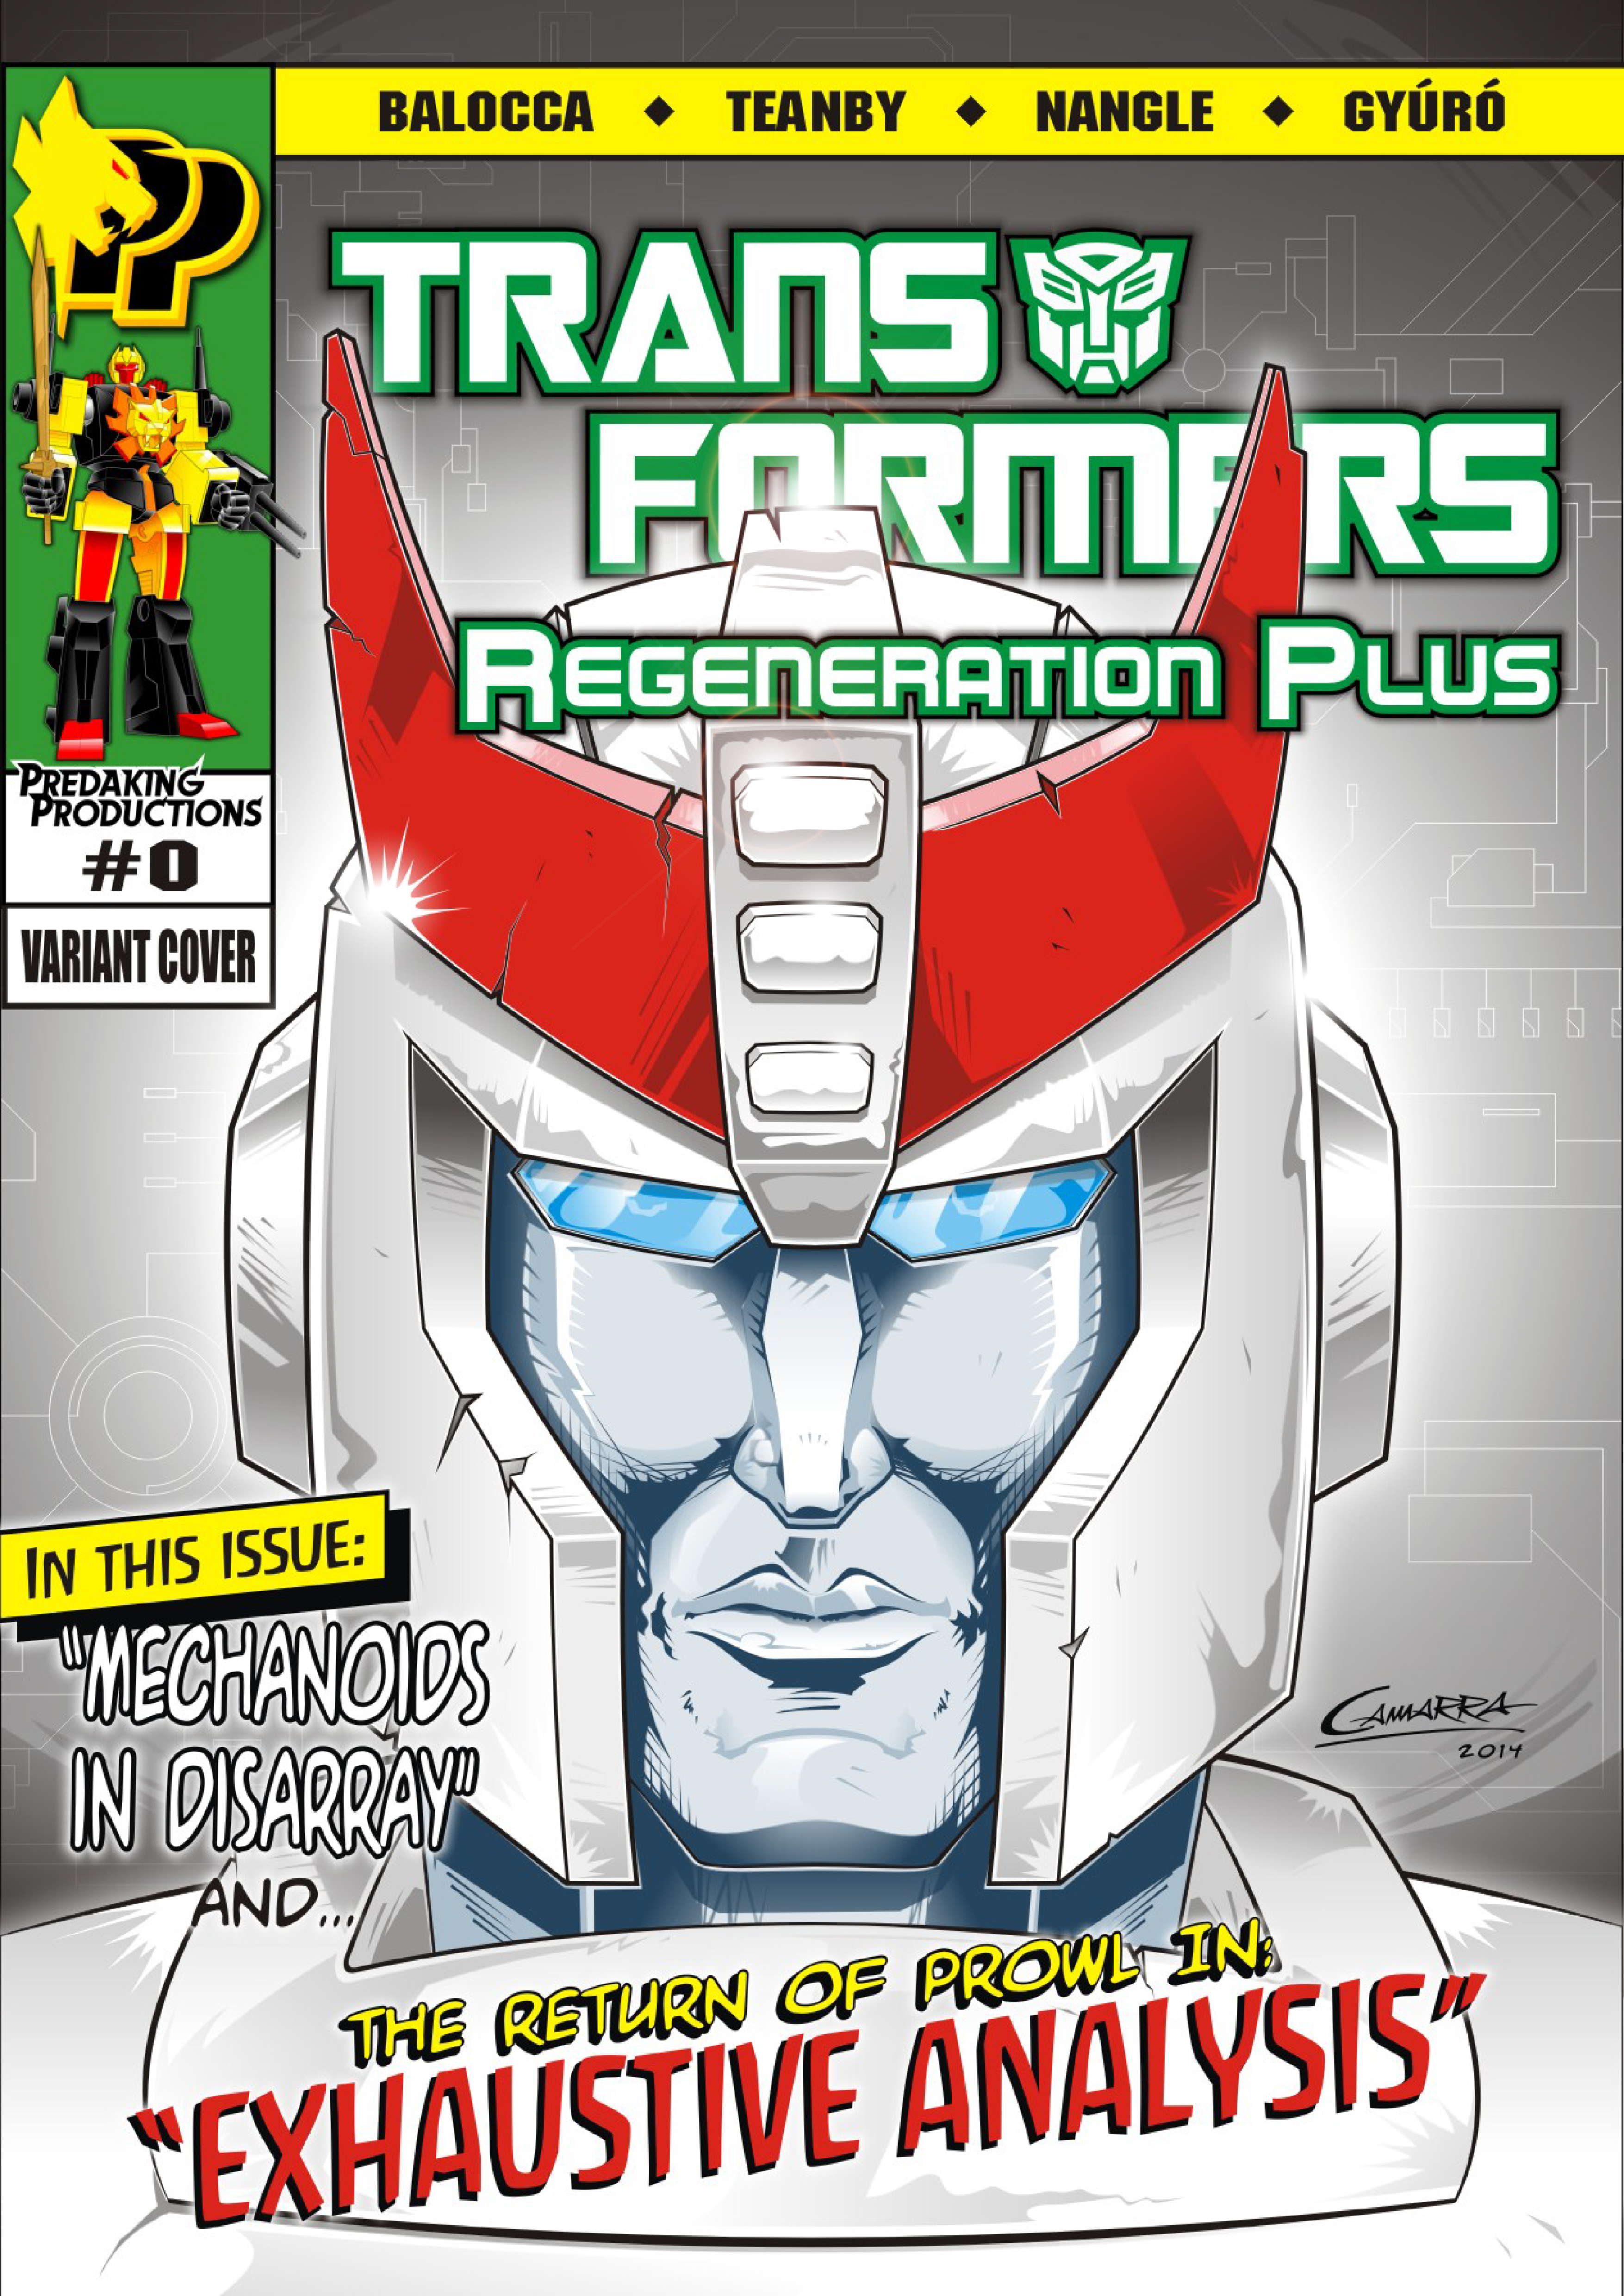 Variant Cover  0 Color+effects by RegenerationPlus